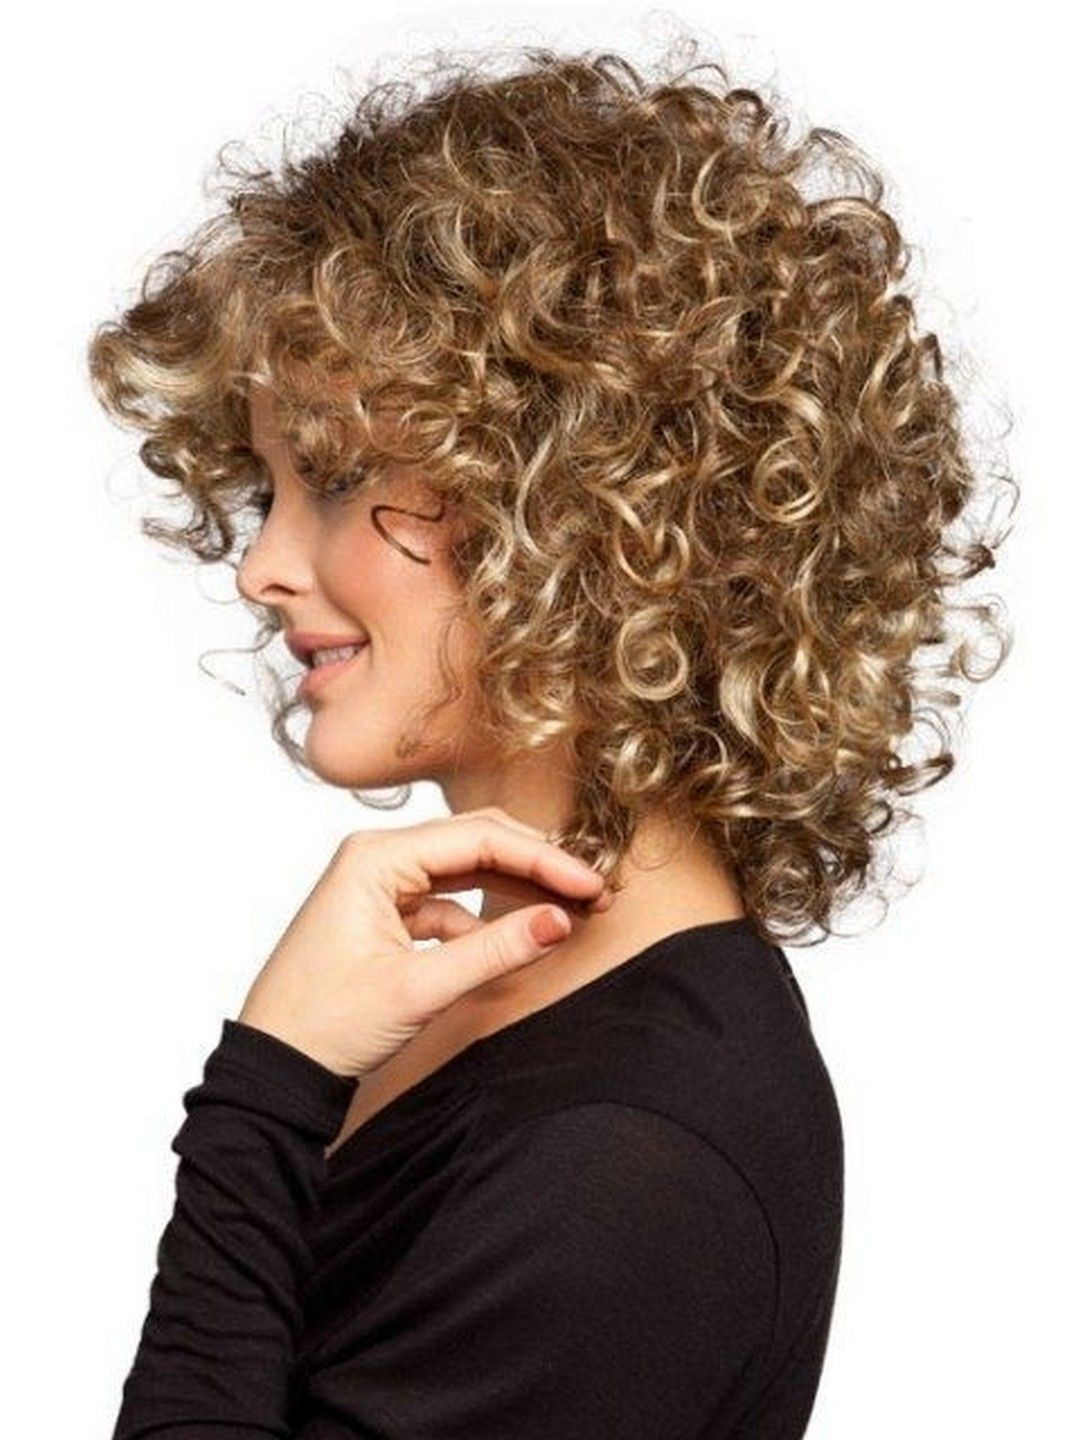 100 Amazing Naturally Curly Hairstyle Ideas With Images Short